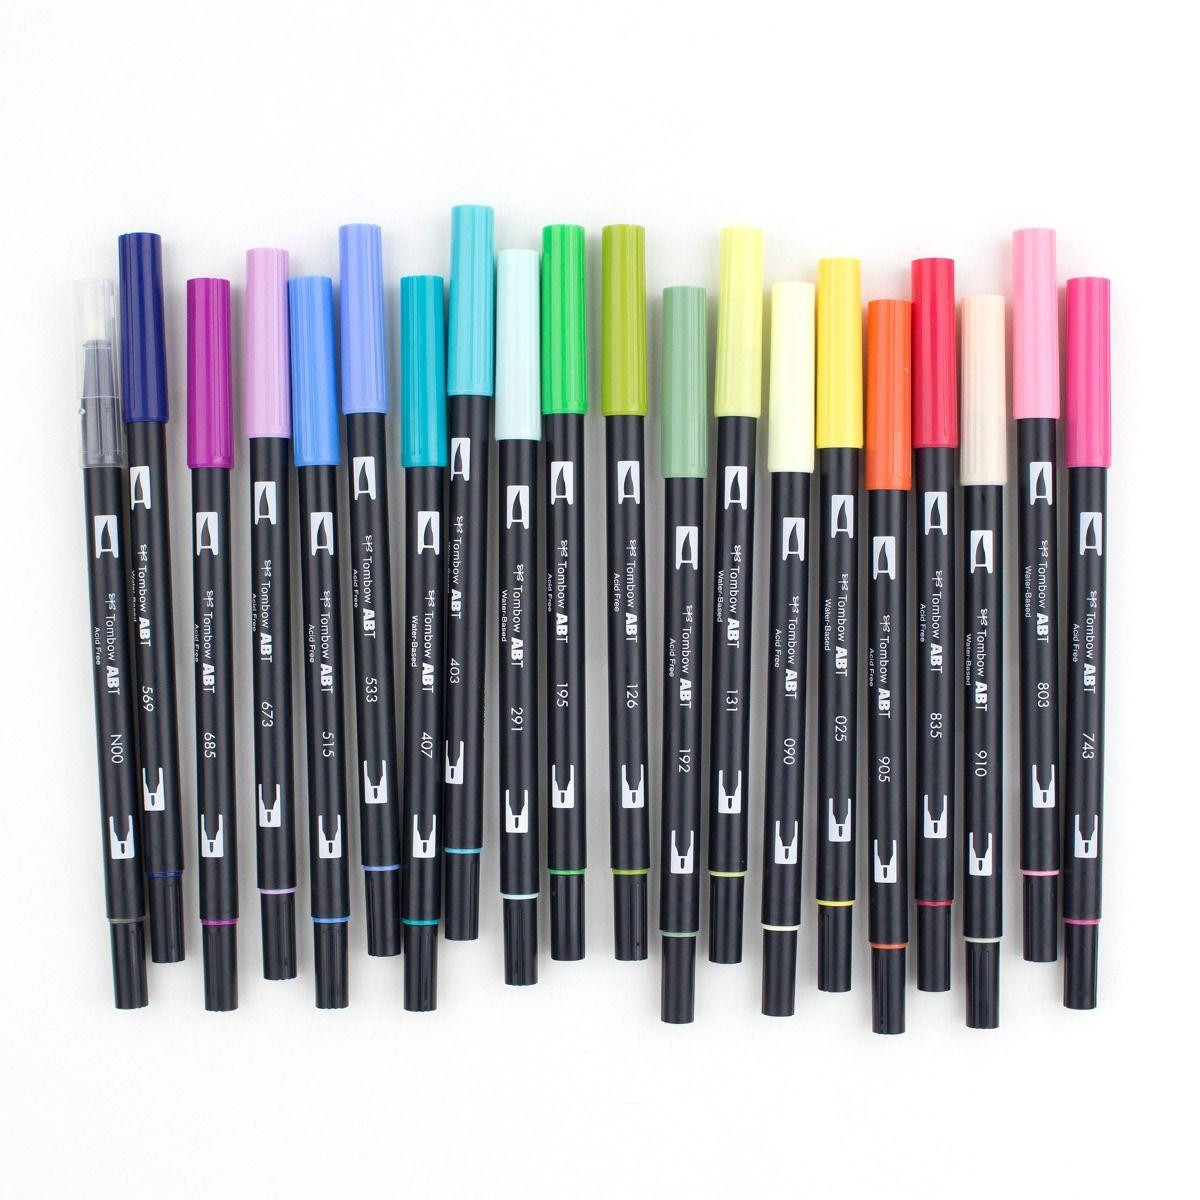 Floral Palette Set of 20, Tombow Dual Brush Pens - 085014561921